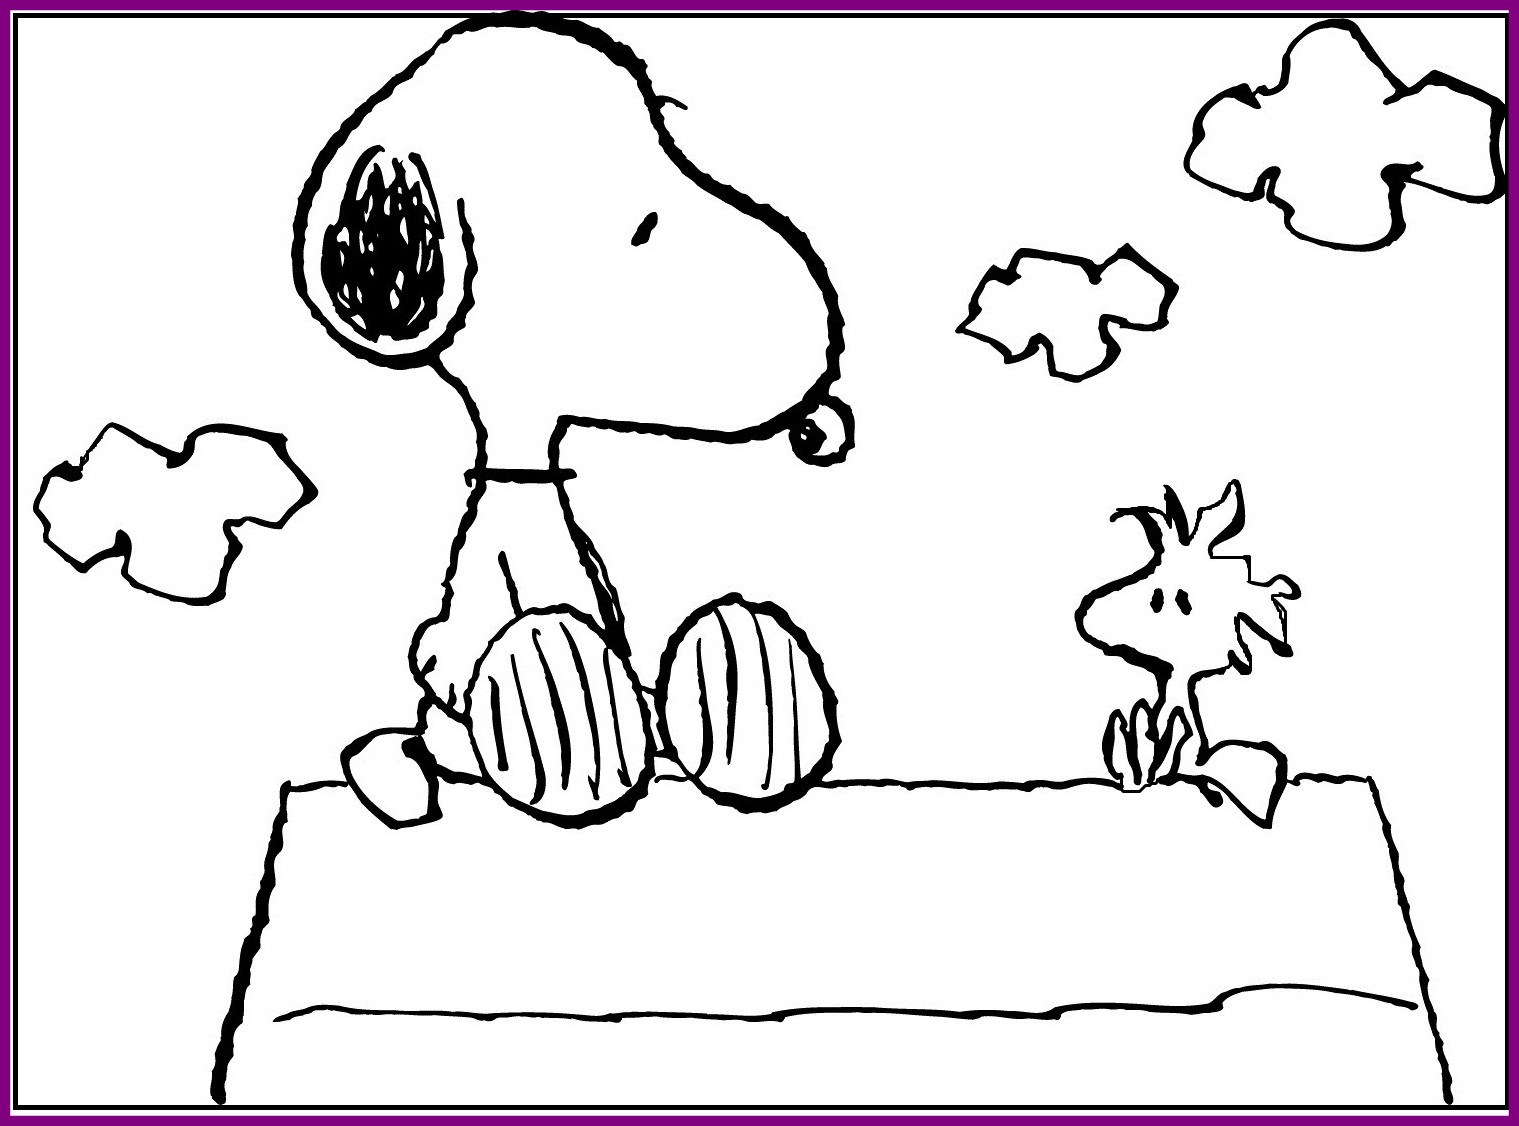 1519x1126 Inspiring Snoopy Sitting With Woodstock Coloring Picture For Kids